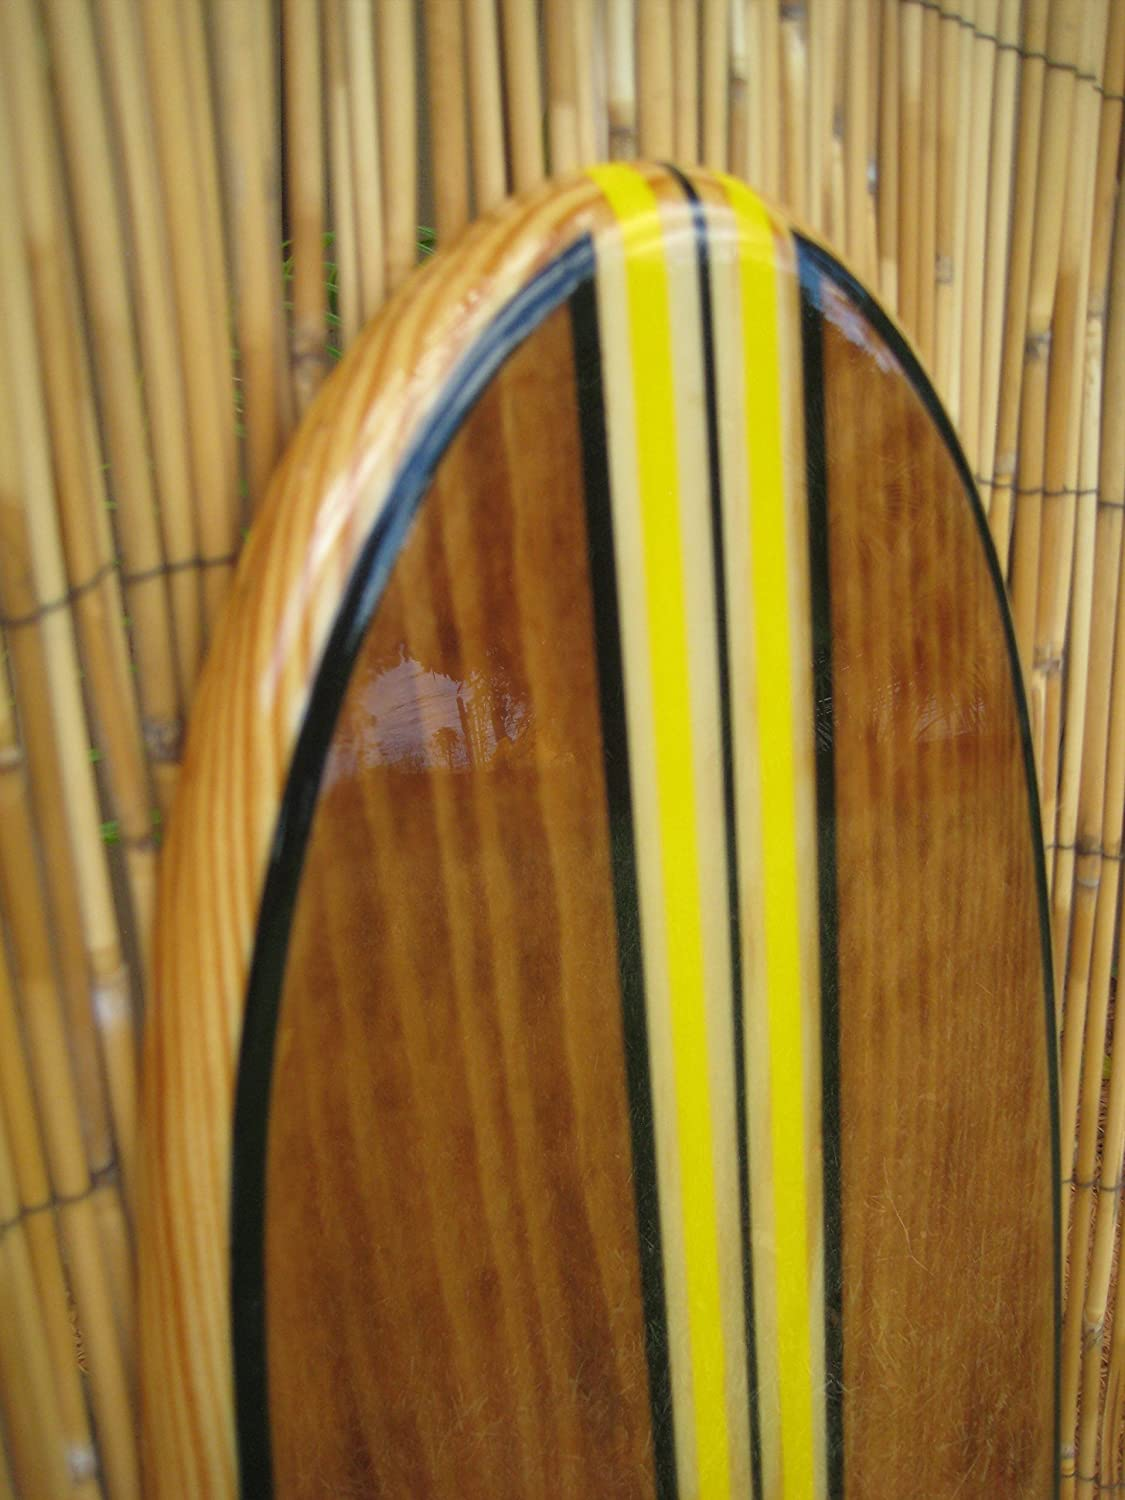 Amazon.com: Solid wood wall hanging decorative surfboard for a ...